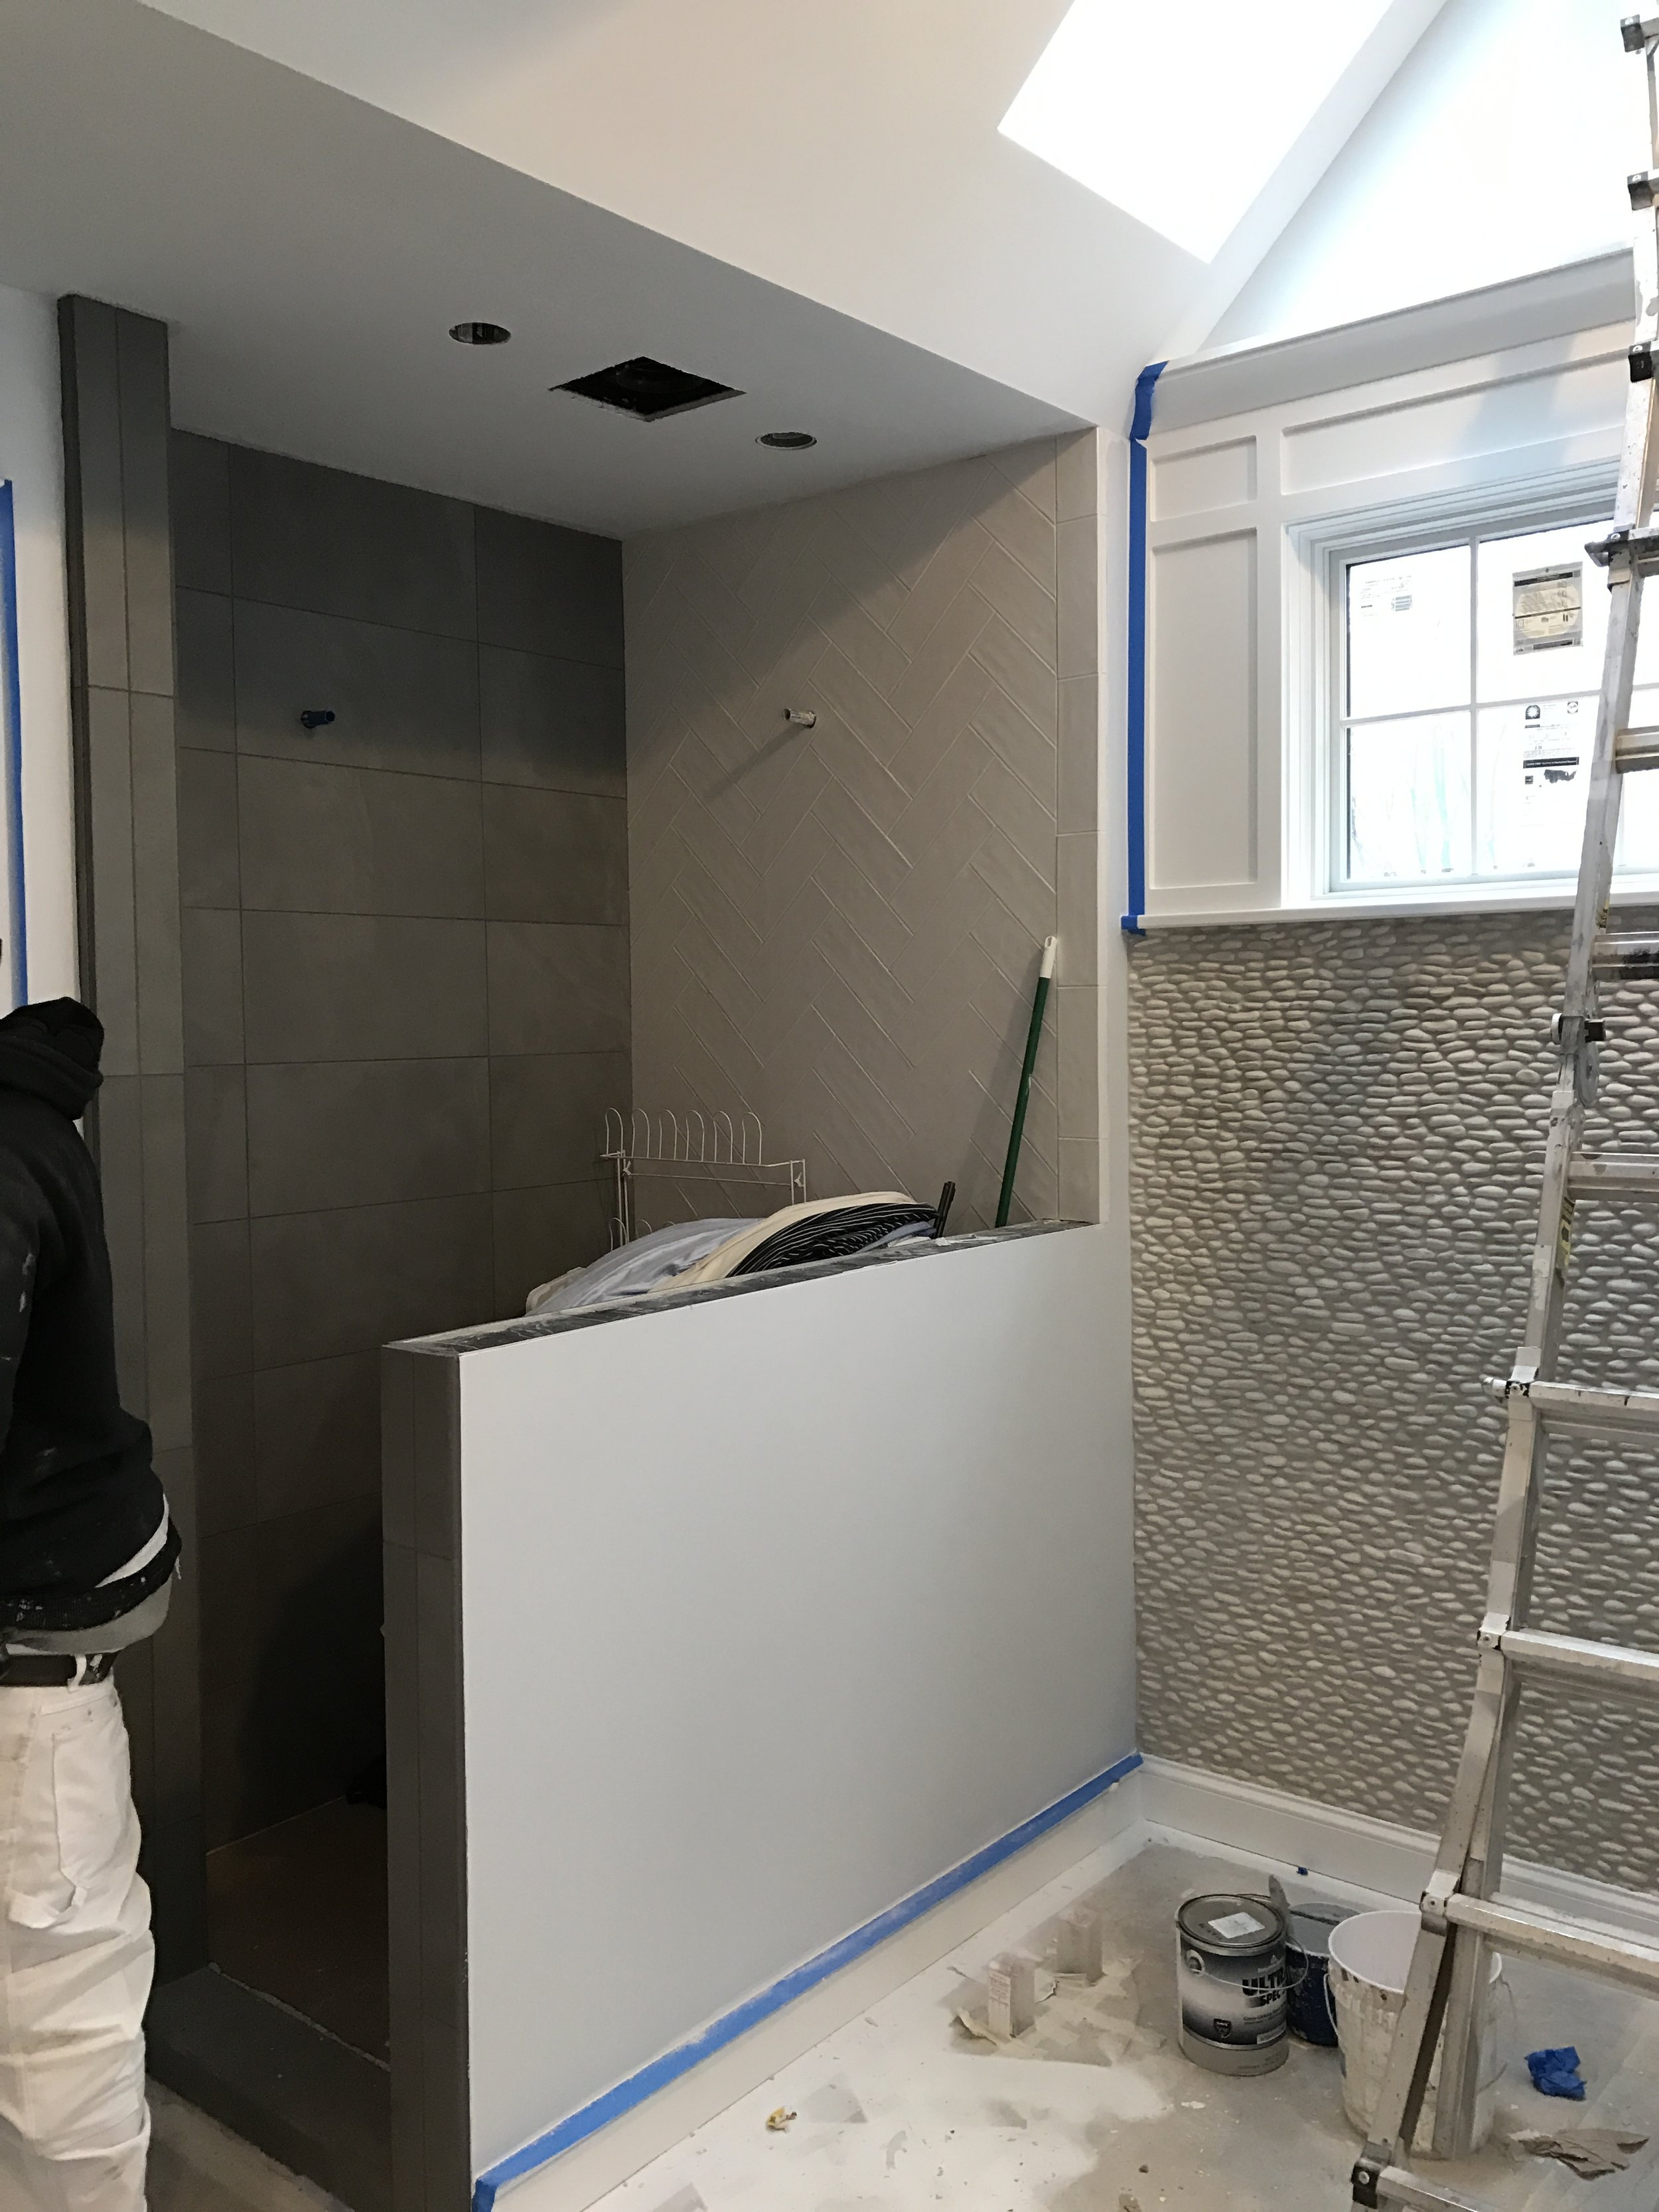 Finishing touches to tile in master bath shower